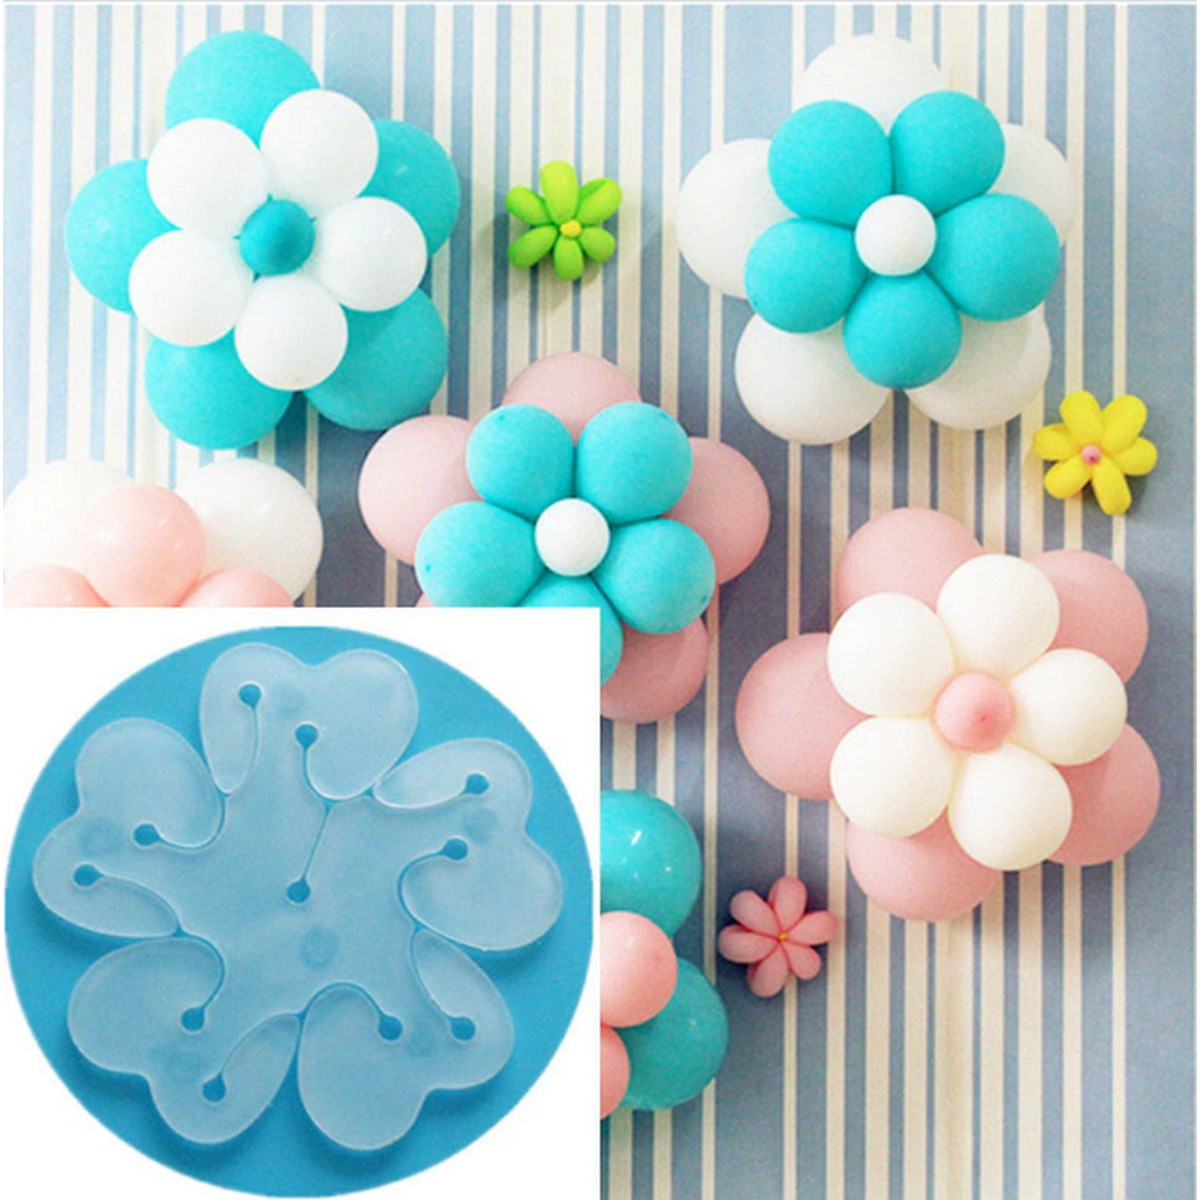 Pack of 6pcs Balloon Flower Clips -Original Packing Plastic Flower Balloon Clips Closures - Make Flower Design Balloon for Wedding Birthday Party Holiday Decoration.